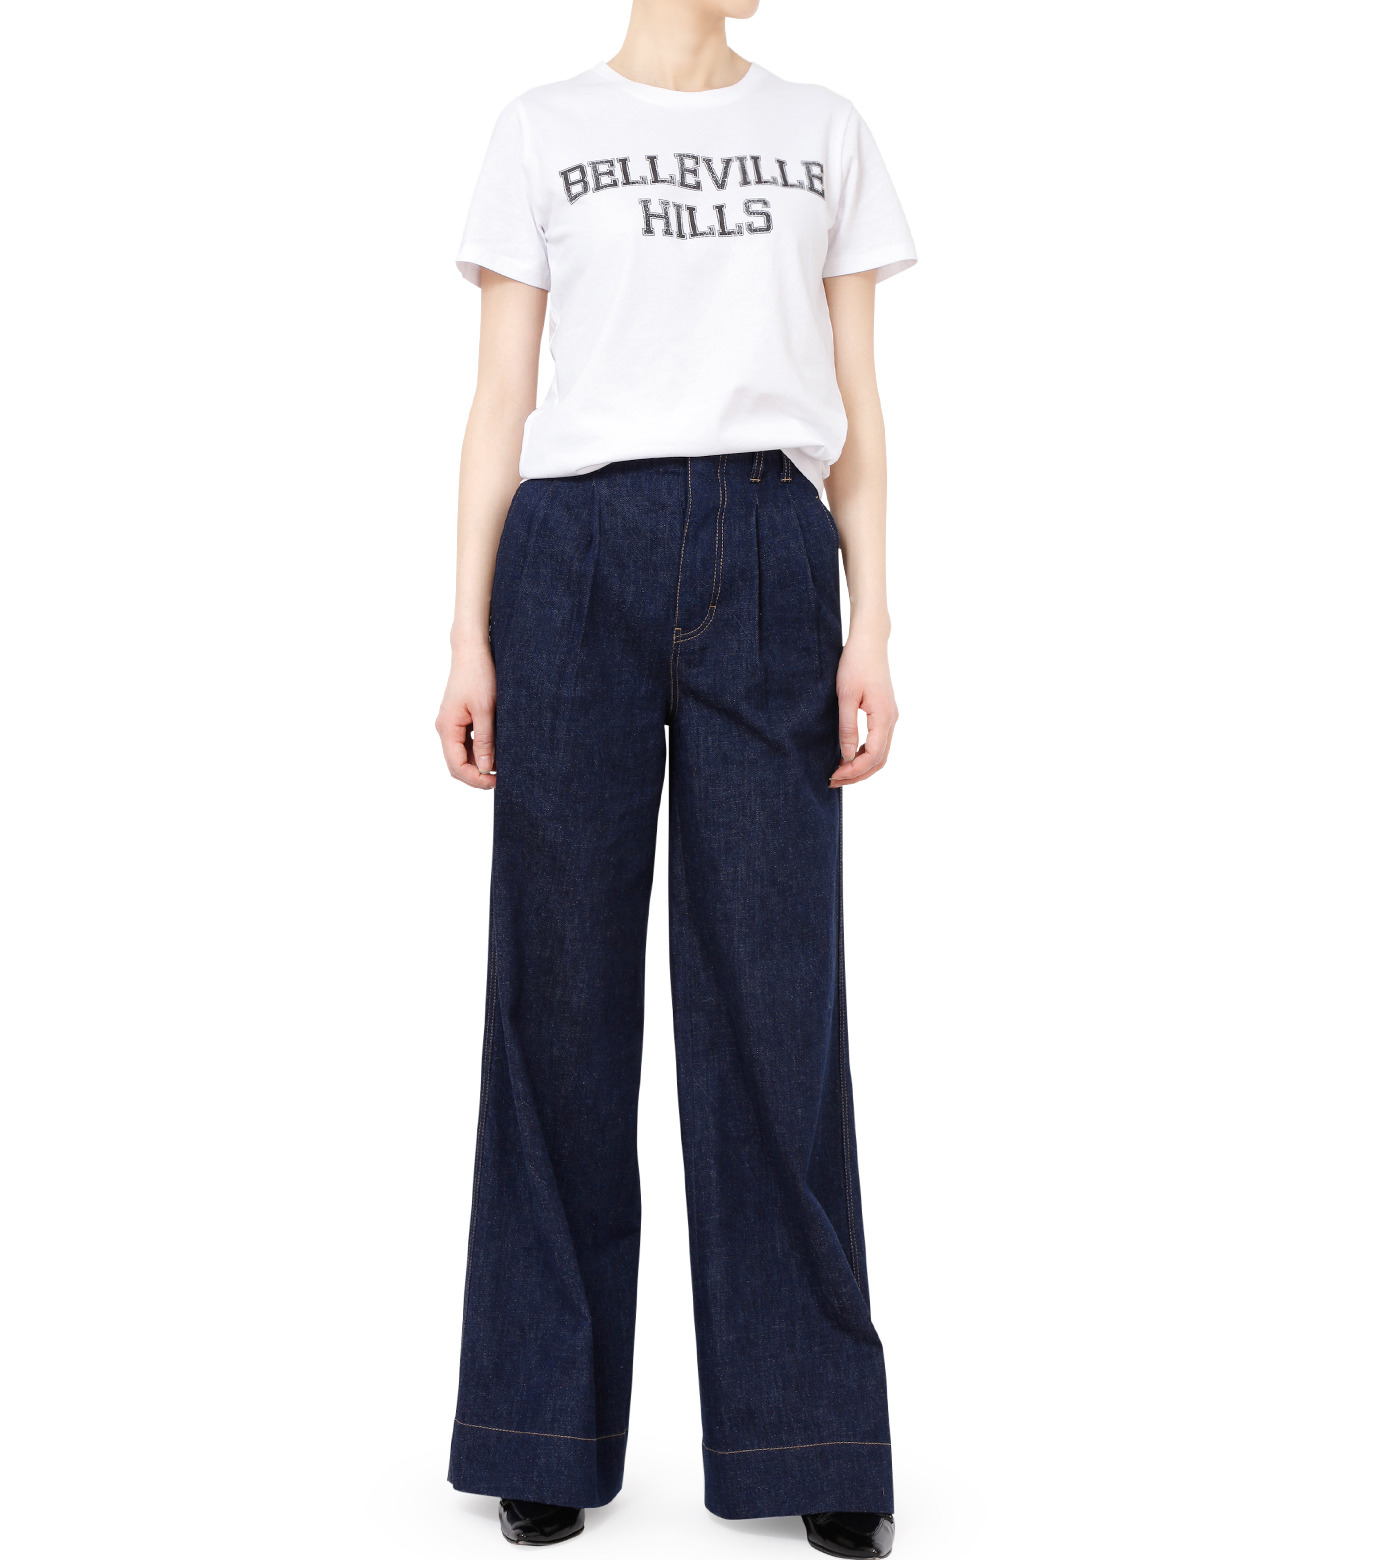 No One(ノーワン)のBELLEVILLE HILLS Logo T-shirt-WHITE(カットソー/cut and sewn)-SS910W-4 拡大詳細画像3